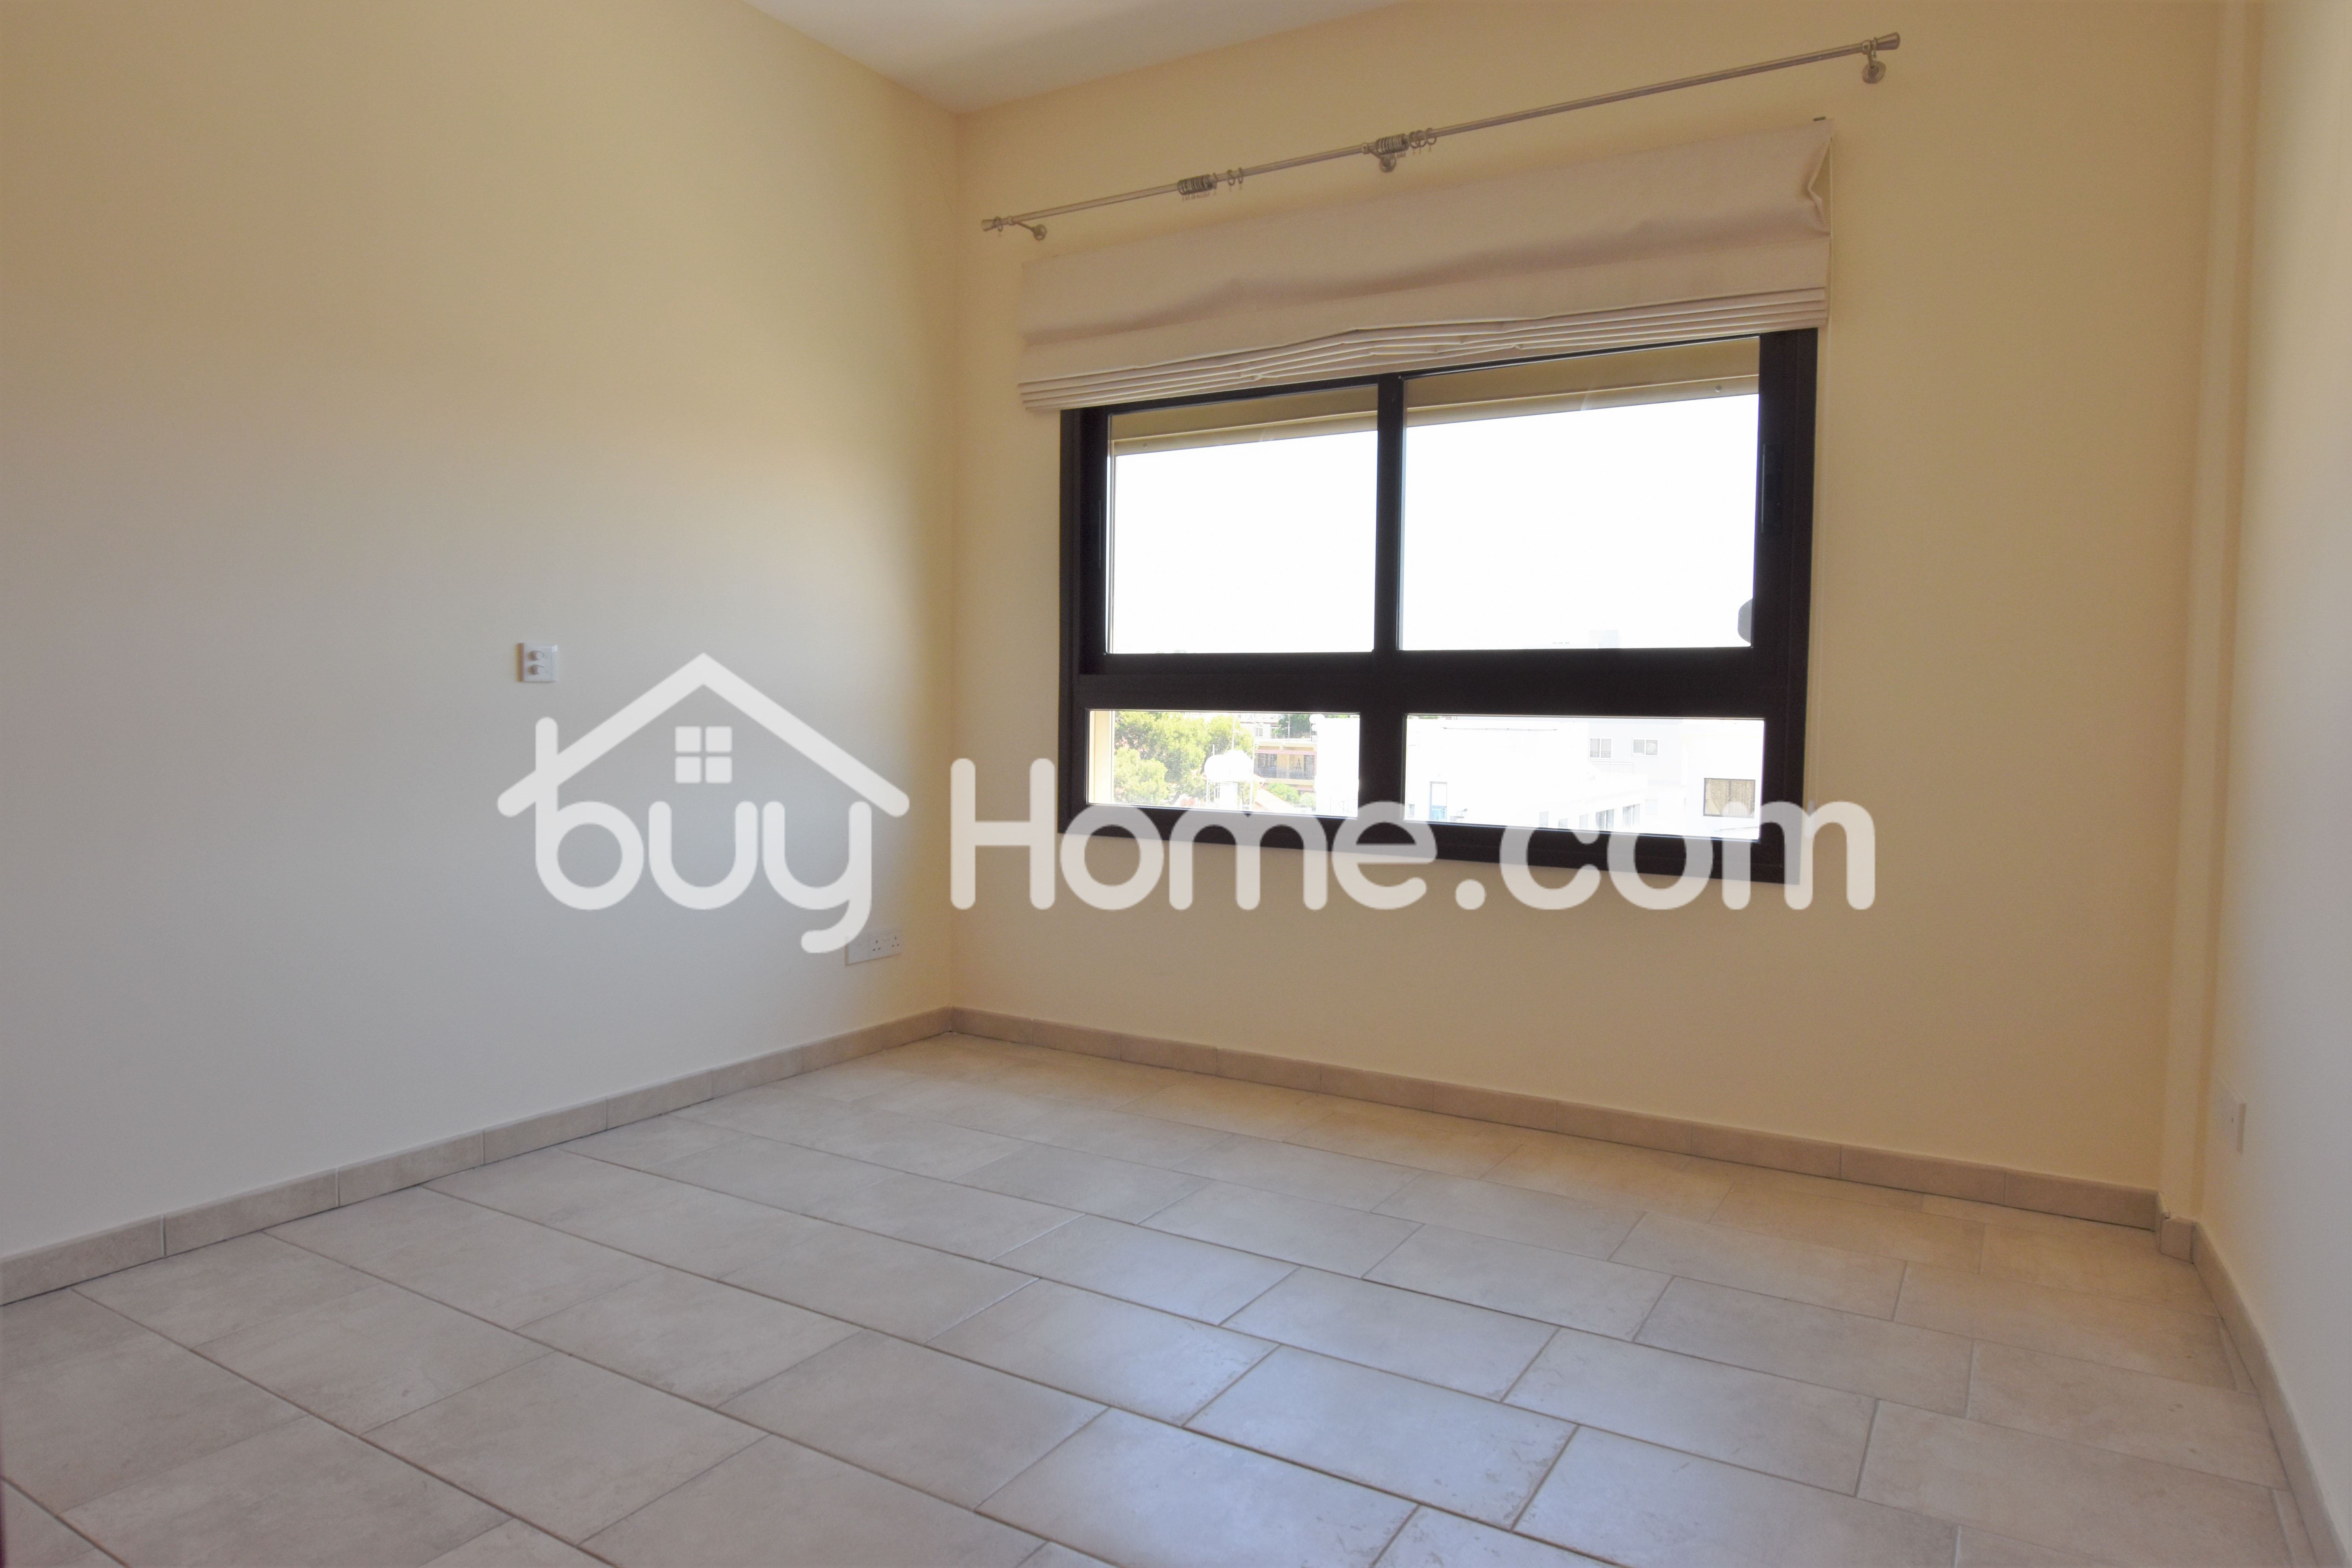 Apartment in Prime Location | BuyHome